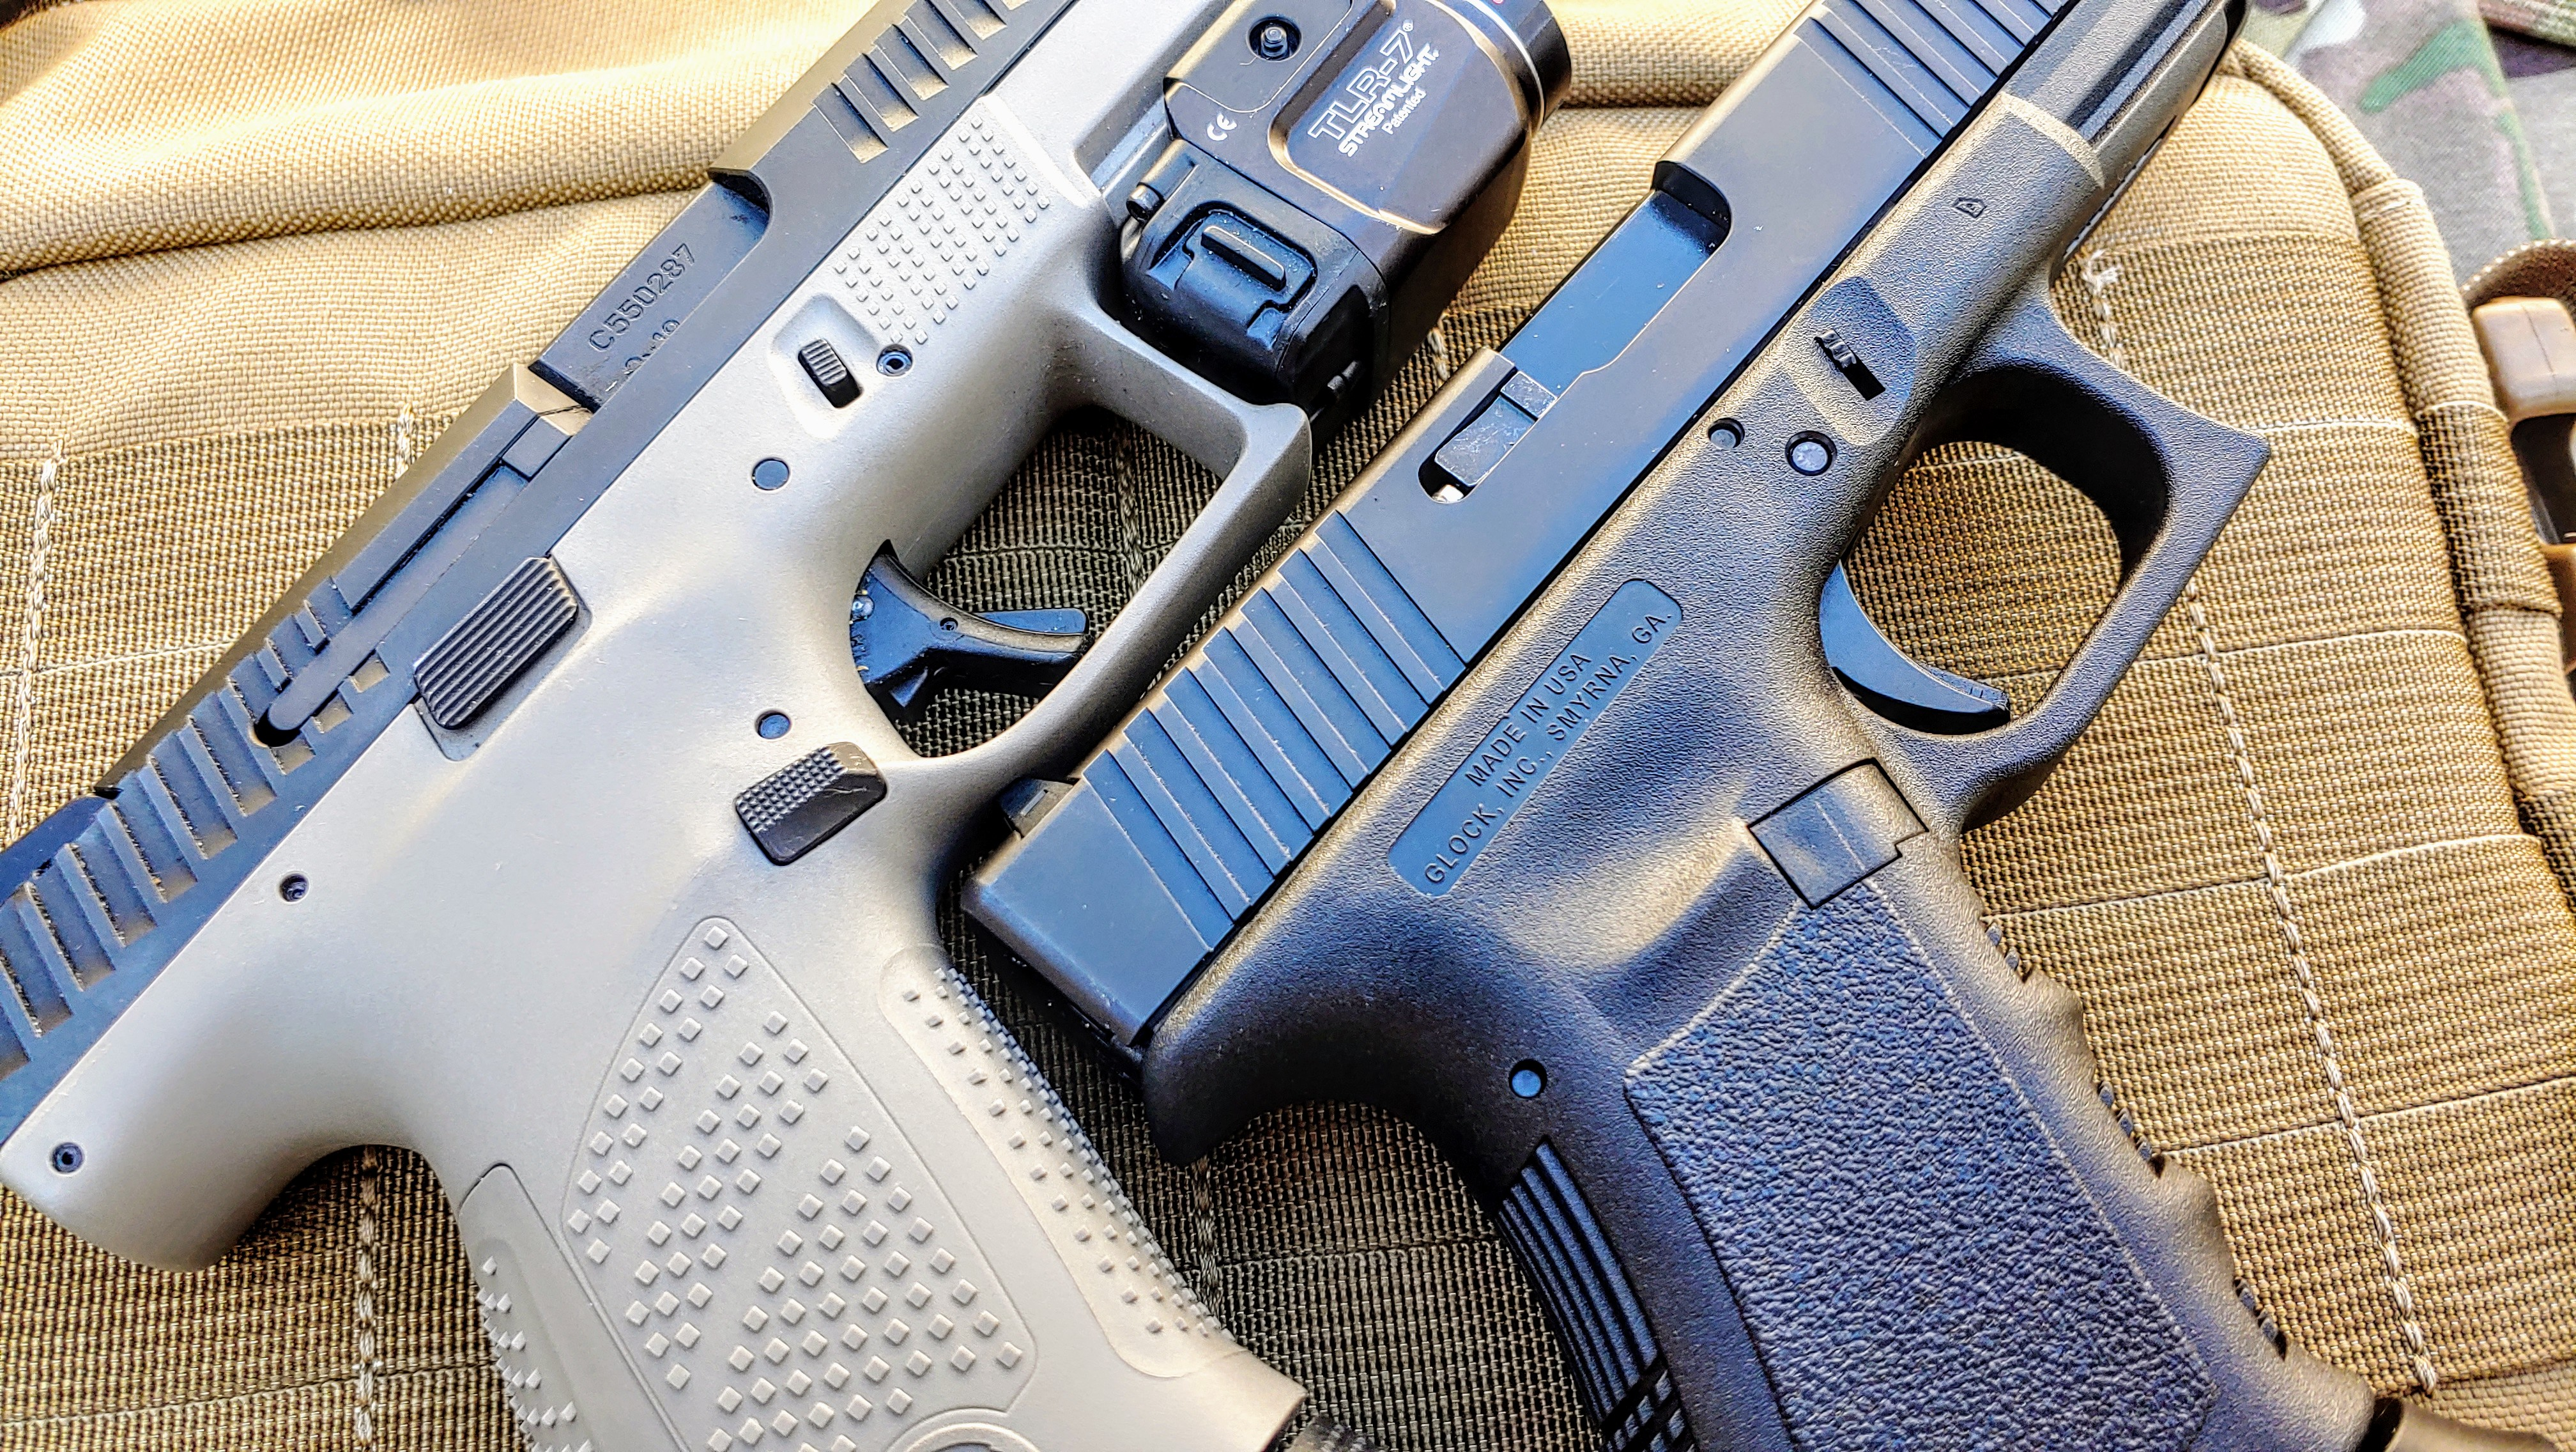 compact pistols, Glock, Glock 19, G19, CZ, CZ P10, CZ P10C, P10, P10C, hybrid holster, holsters, compact, concealed carry, Glock G19, concealed, best holster, IWB, OWB, pistols, carry pistol, best pistol, gun review, CrossBreed Holsters, holsters for concealed carry, holsters for, best holster, Streamlight, TLR-7, light-bearing holsters, holsters for Streamlight, LDS,